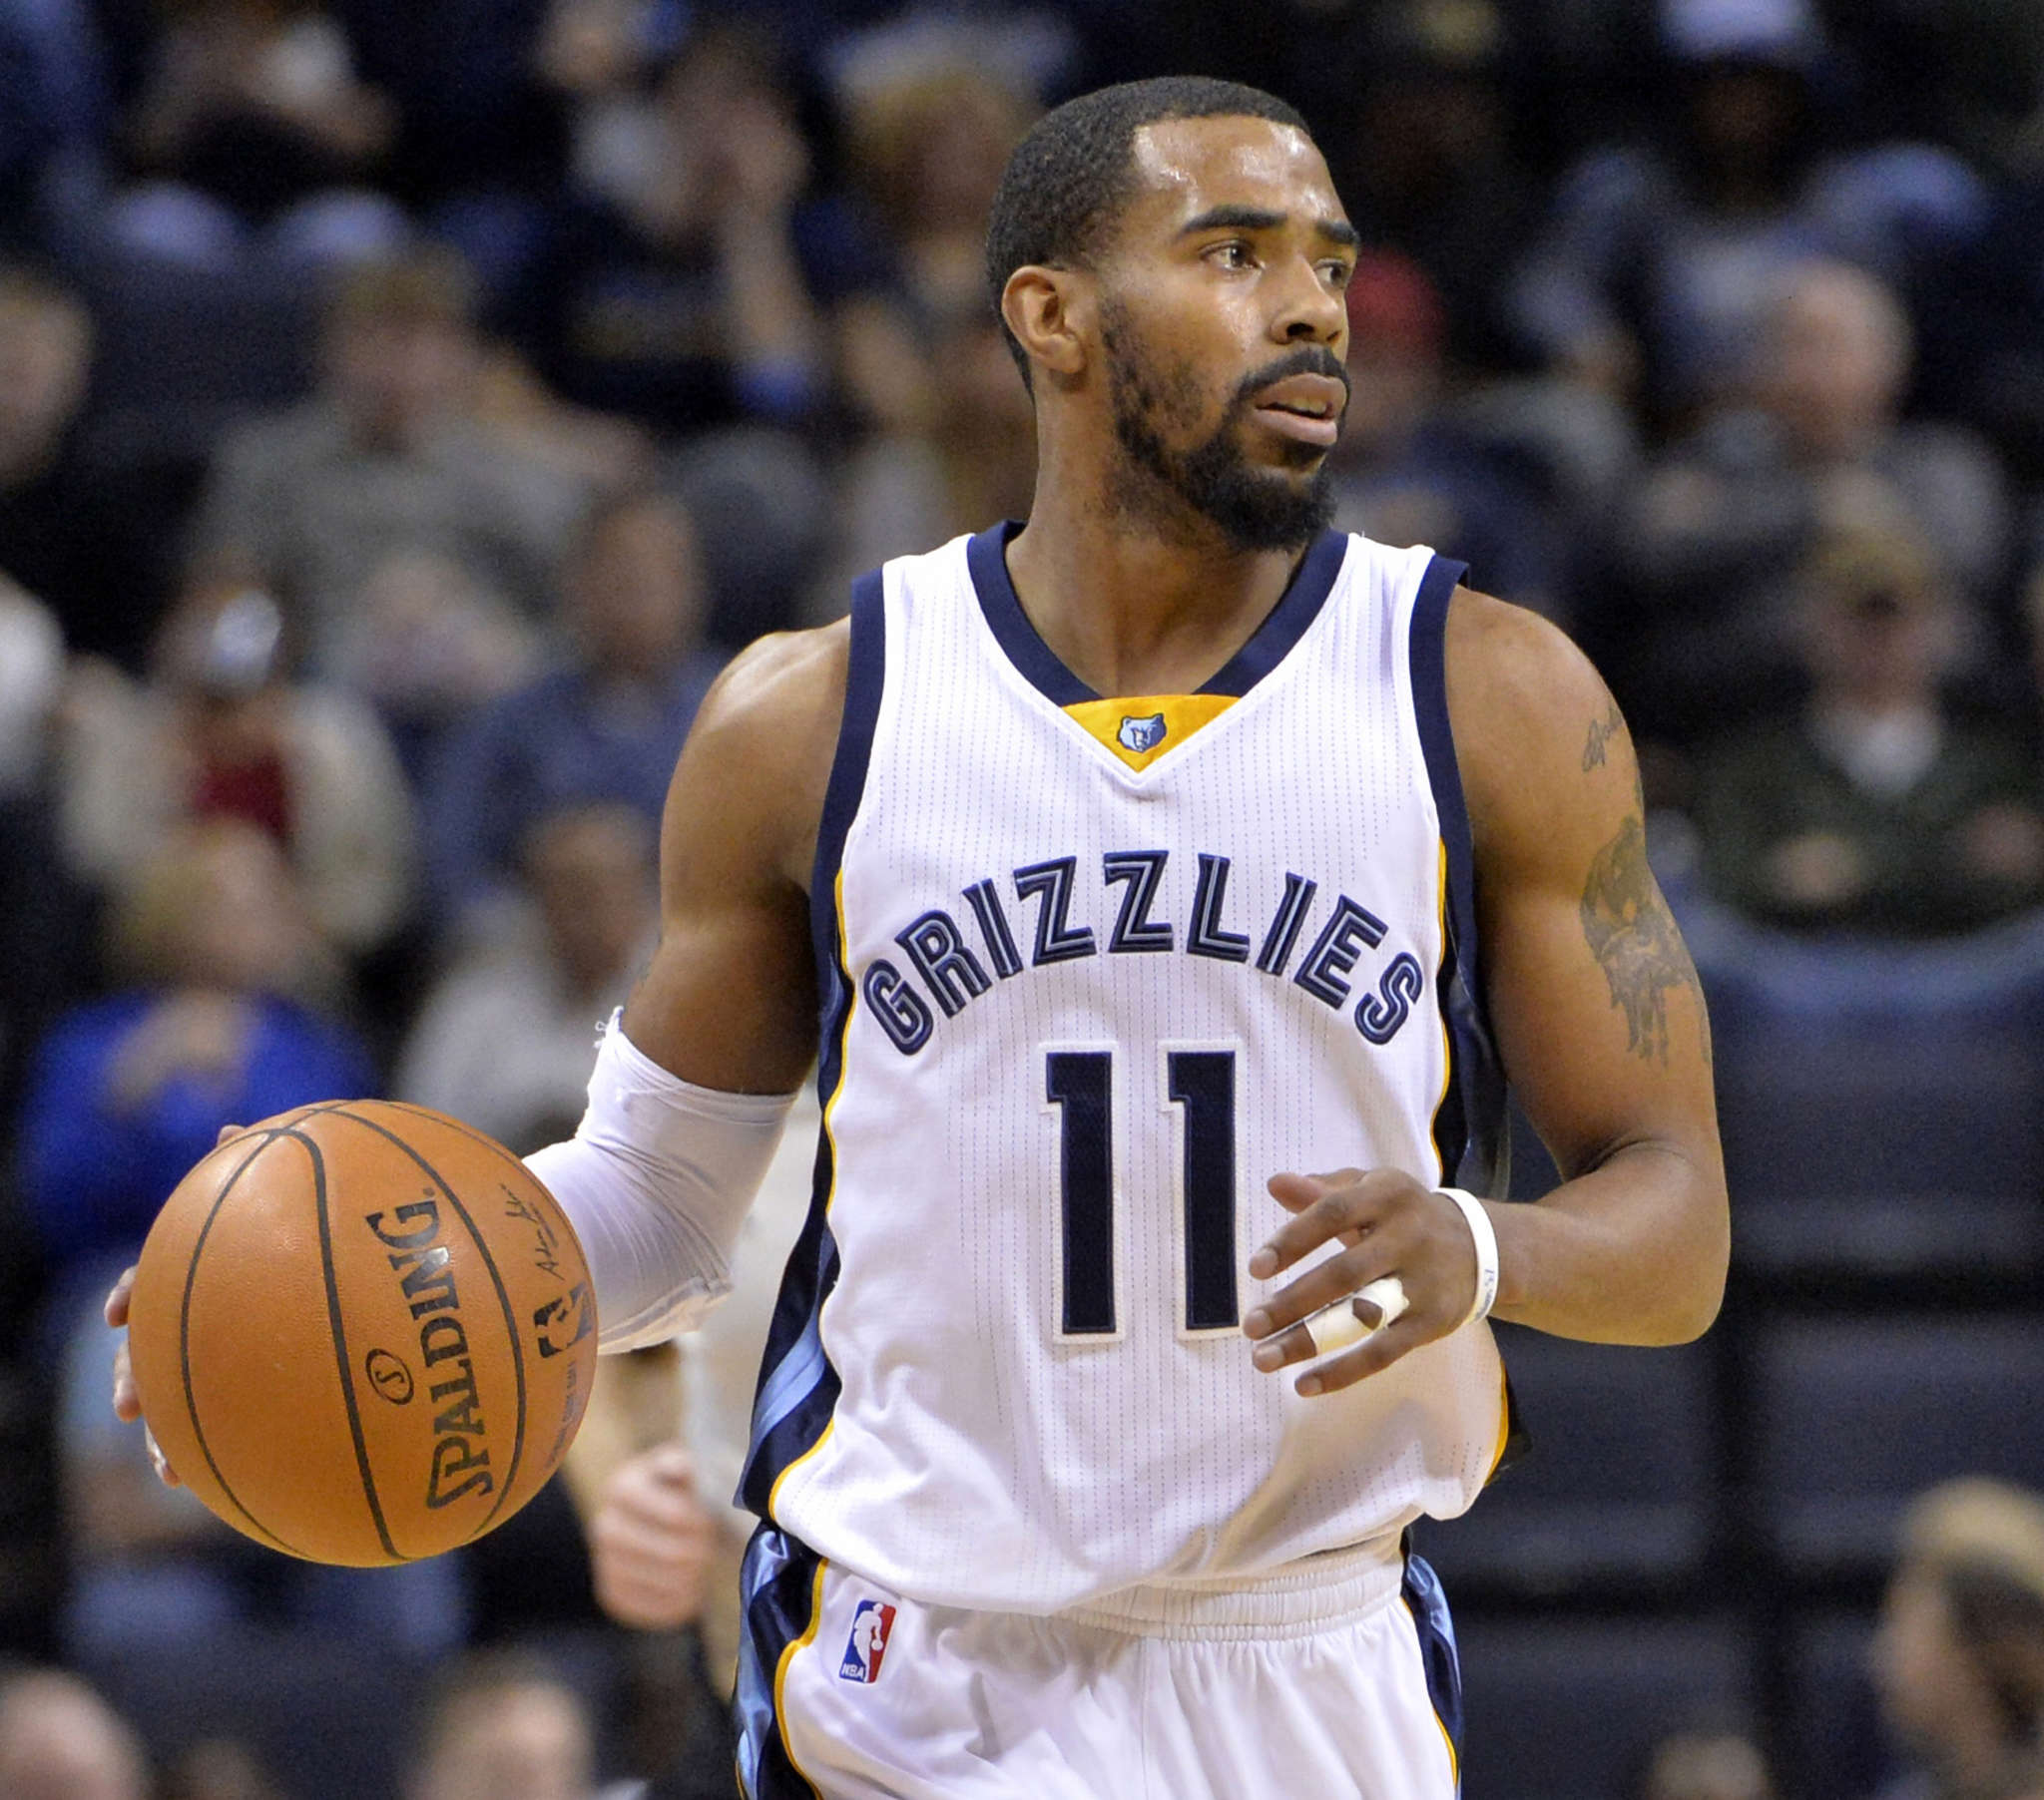 Mike Conley would be a good free-agent target for the Sixers if they want to shore up the point guard positon. Associated Press